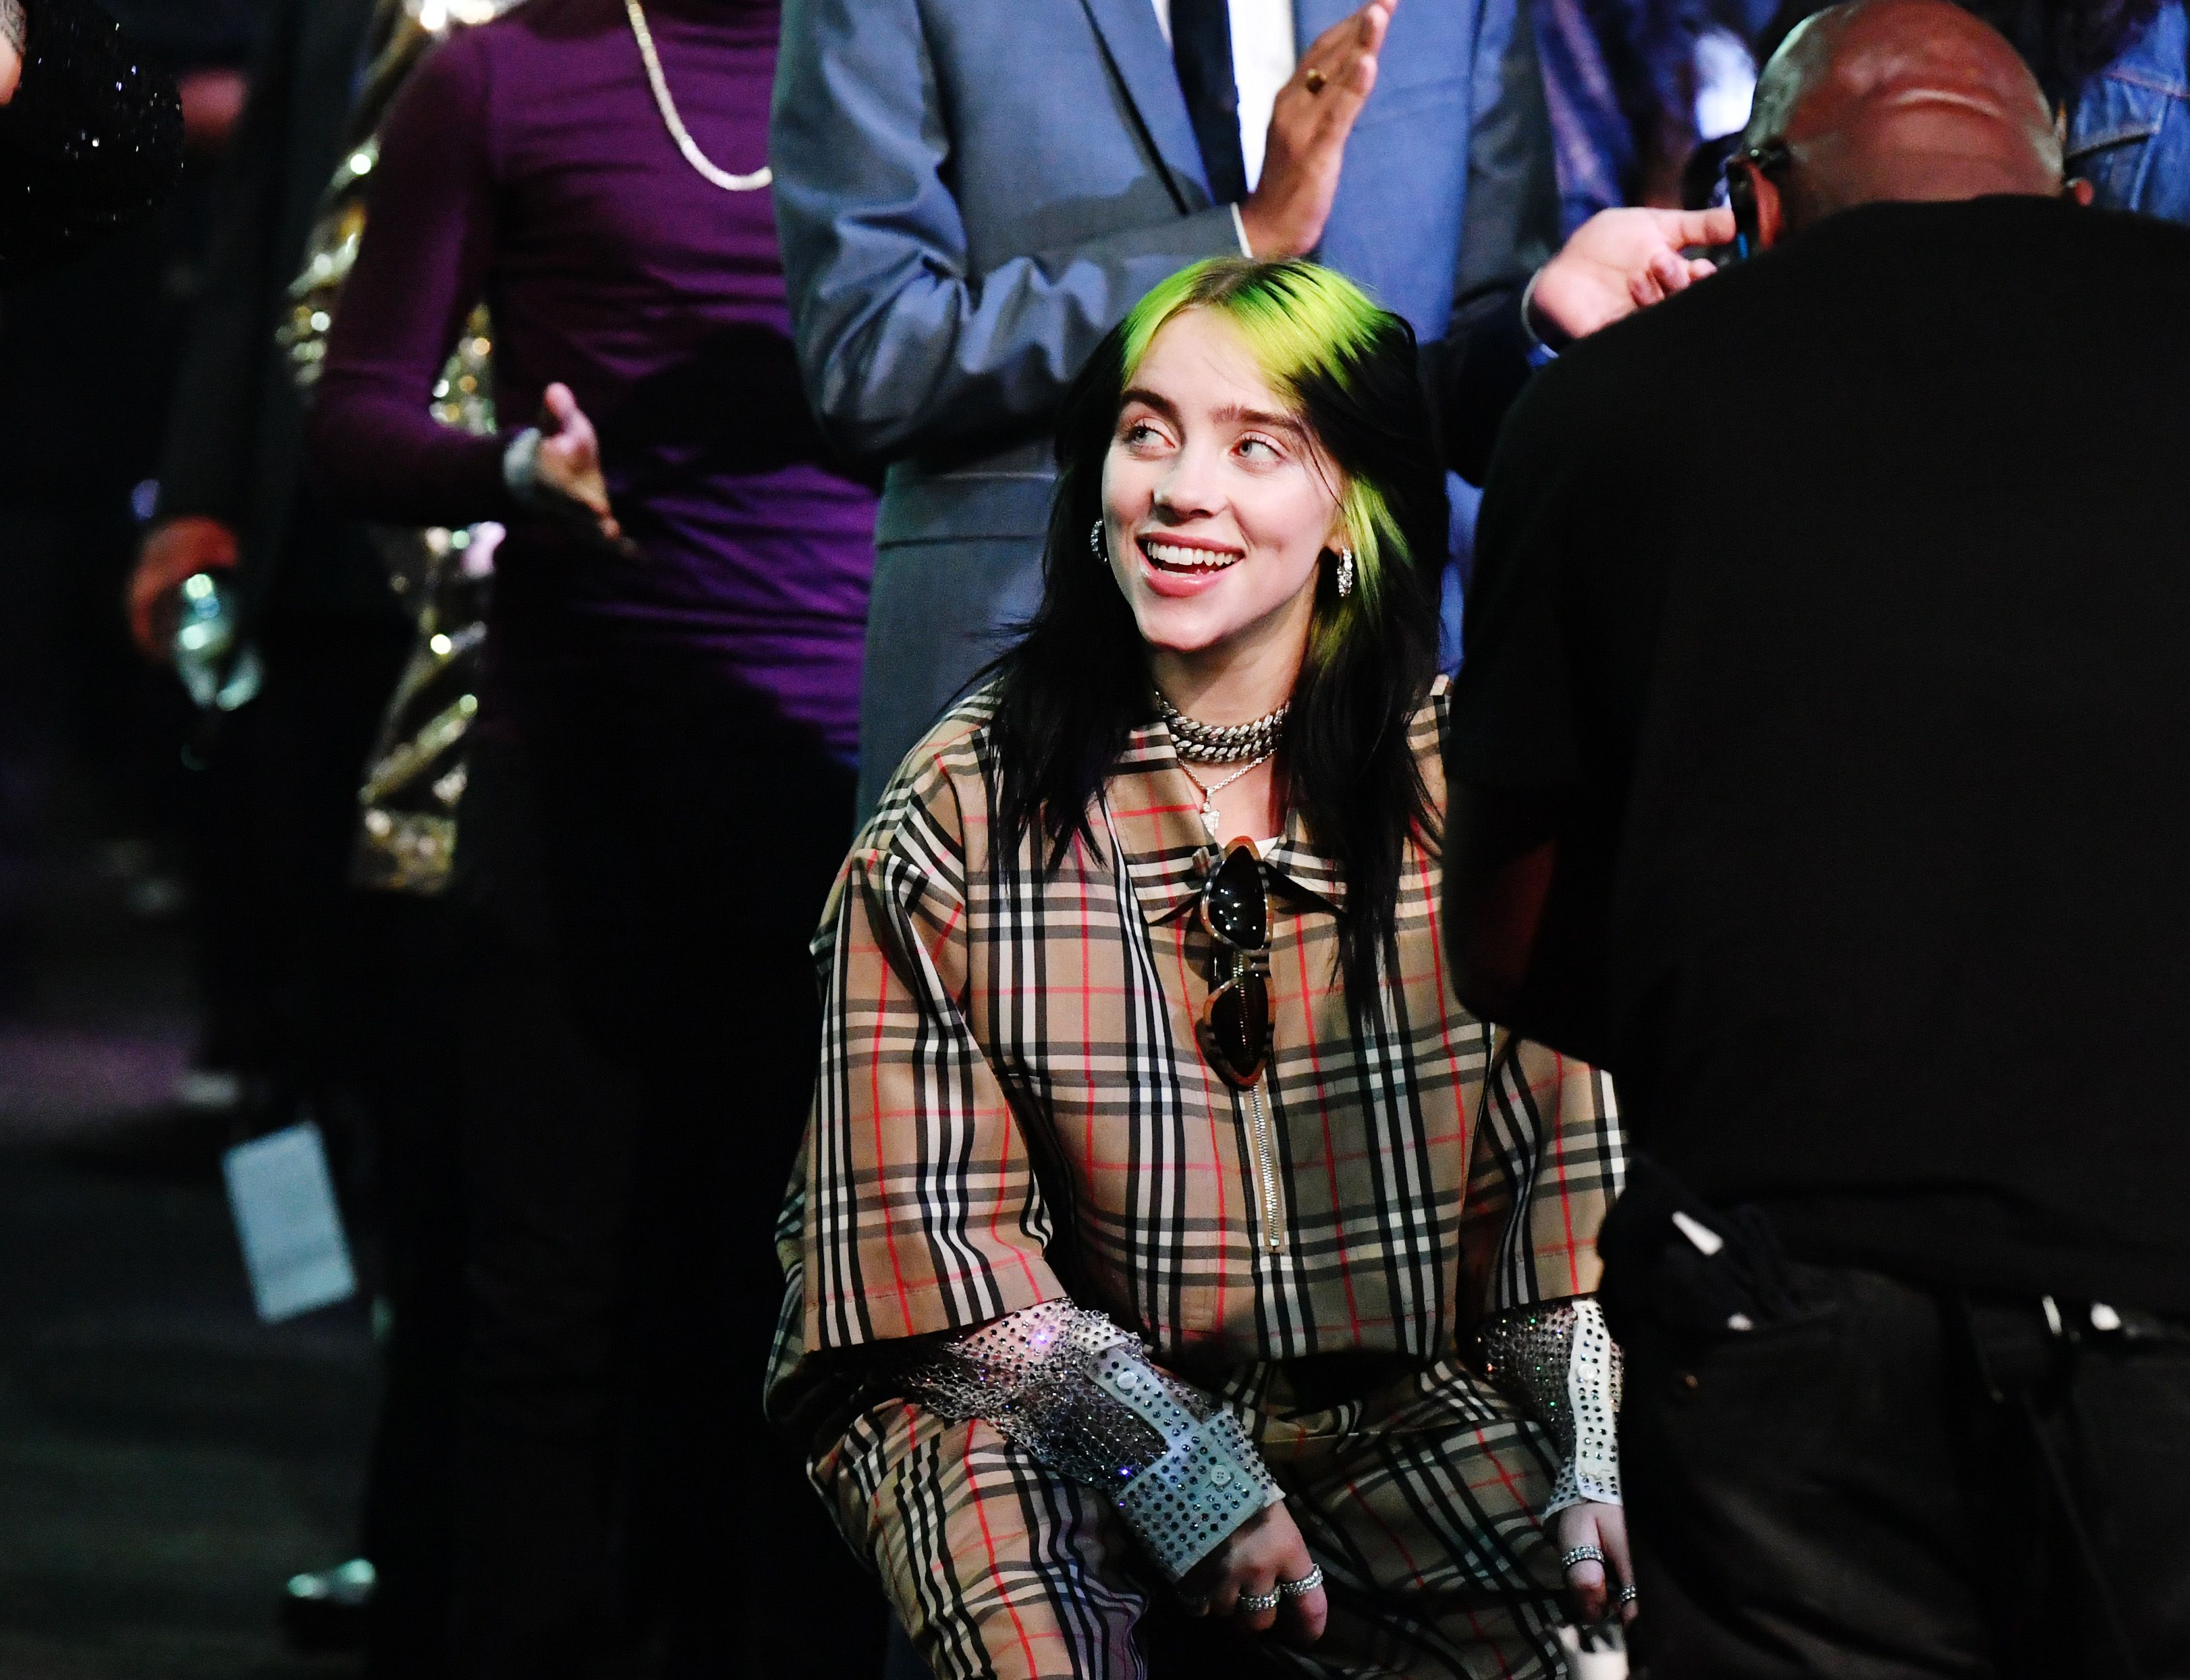 So, we don't want to alarm you, but Billie Eilish has dyed her hair brown